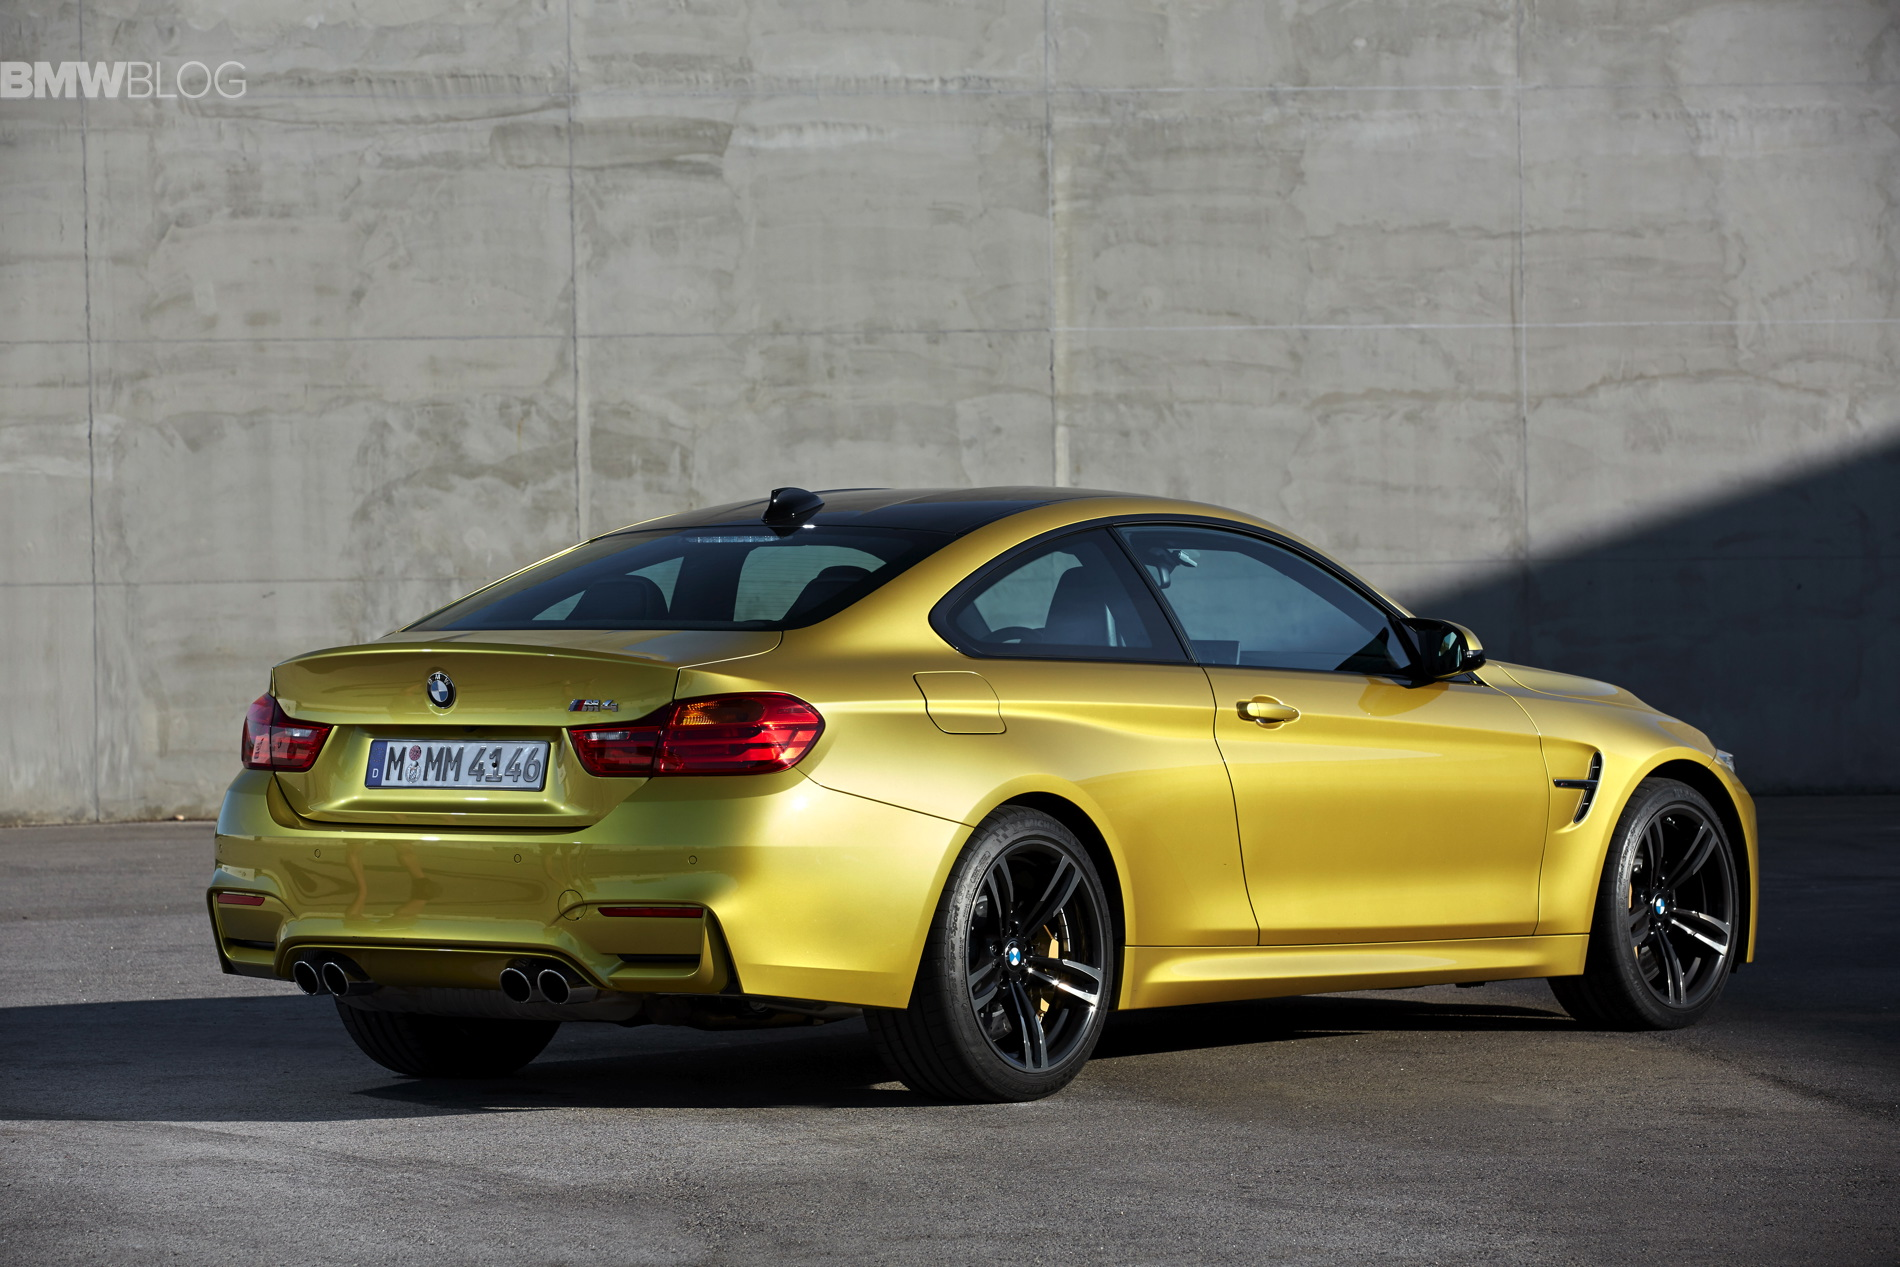 2015 BMW M4 Video Review - BMW M Delivers On Its Promise